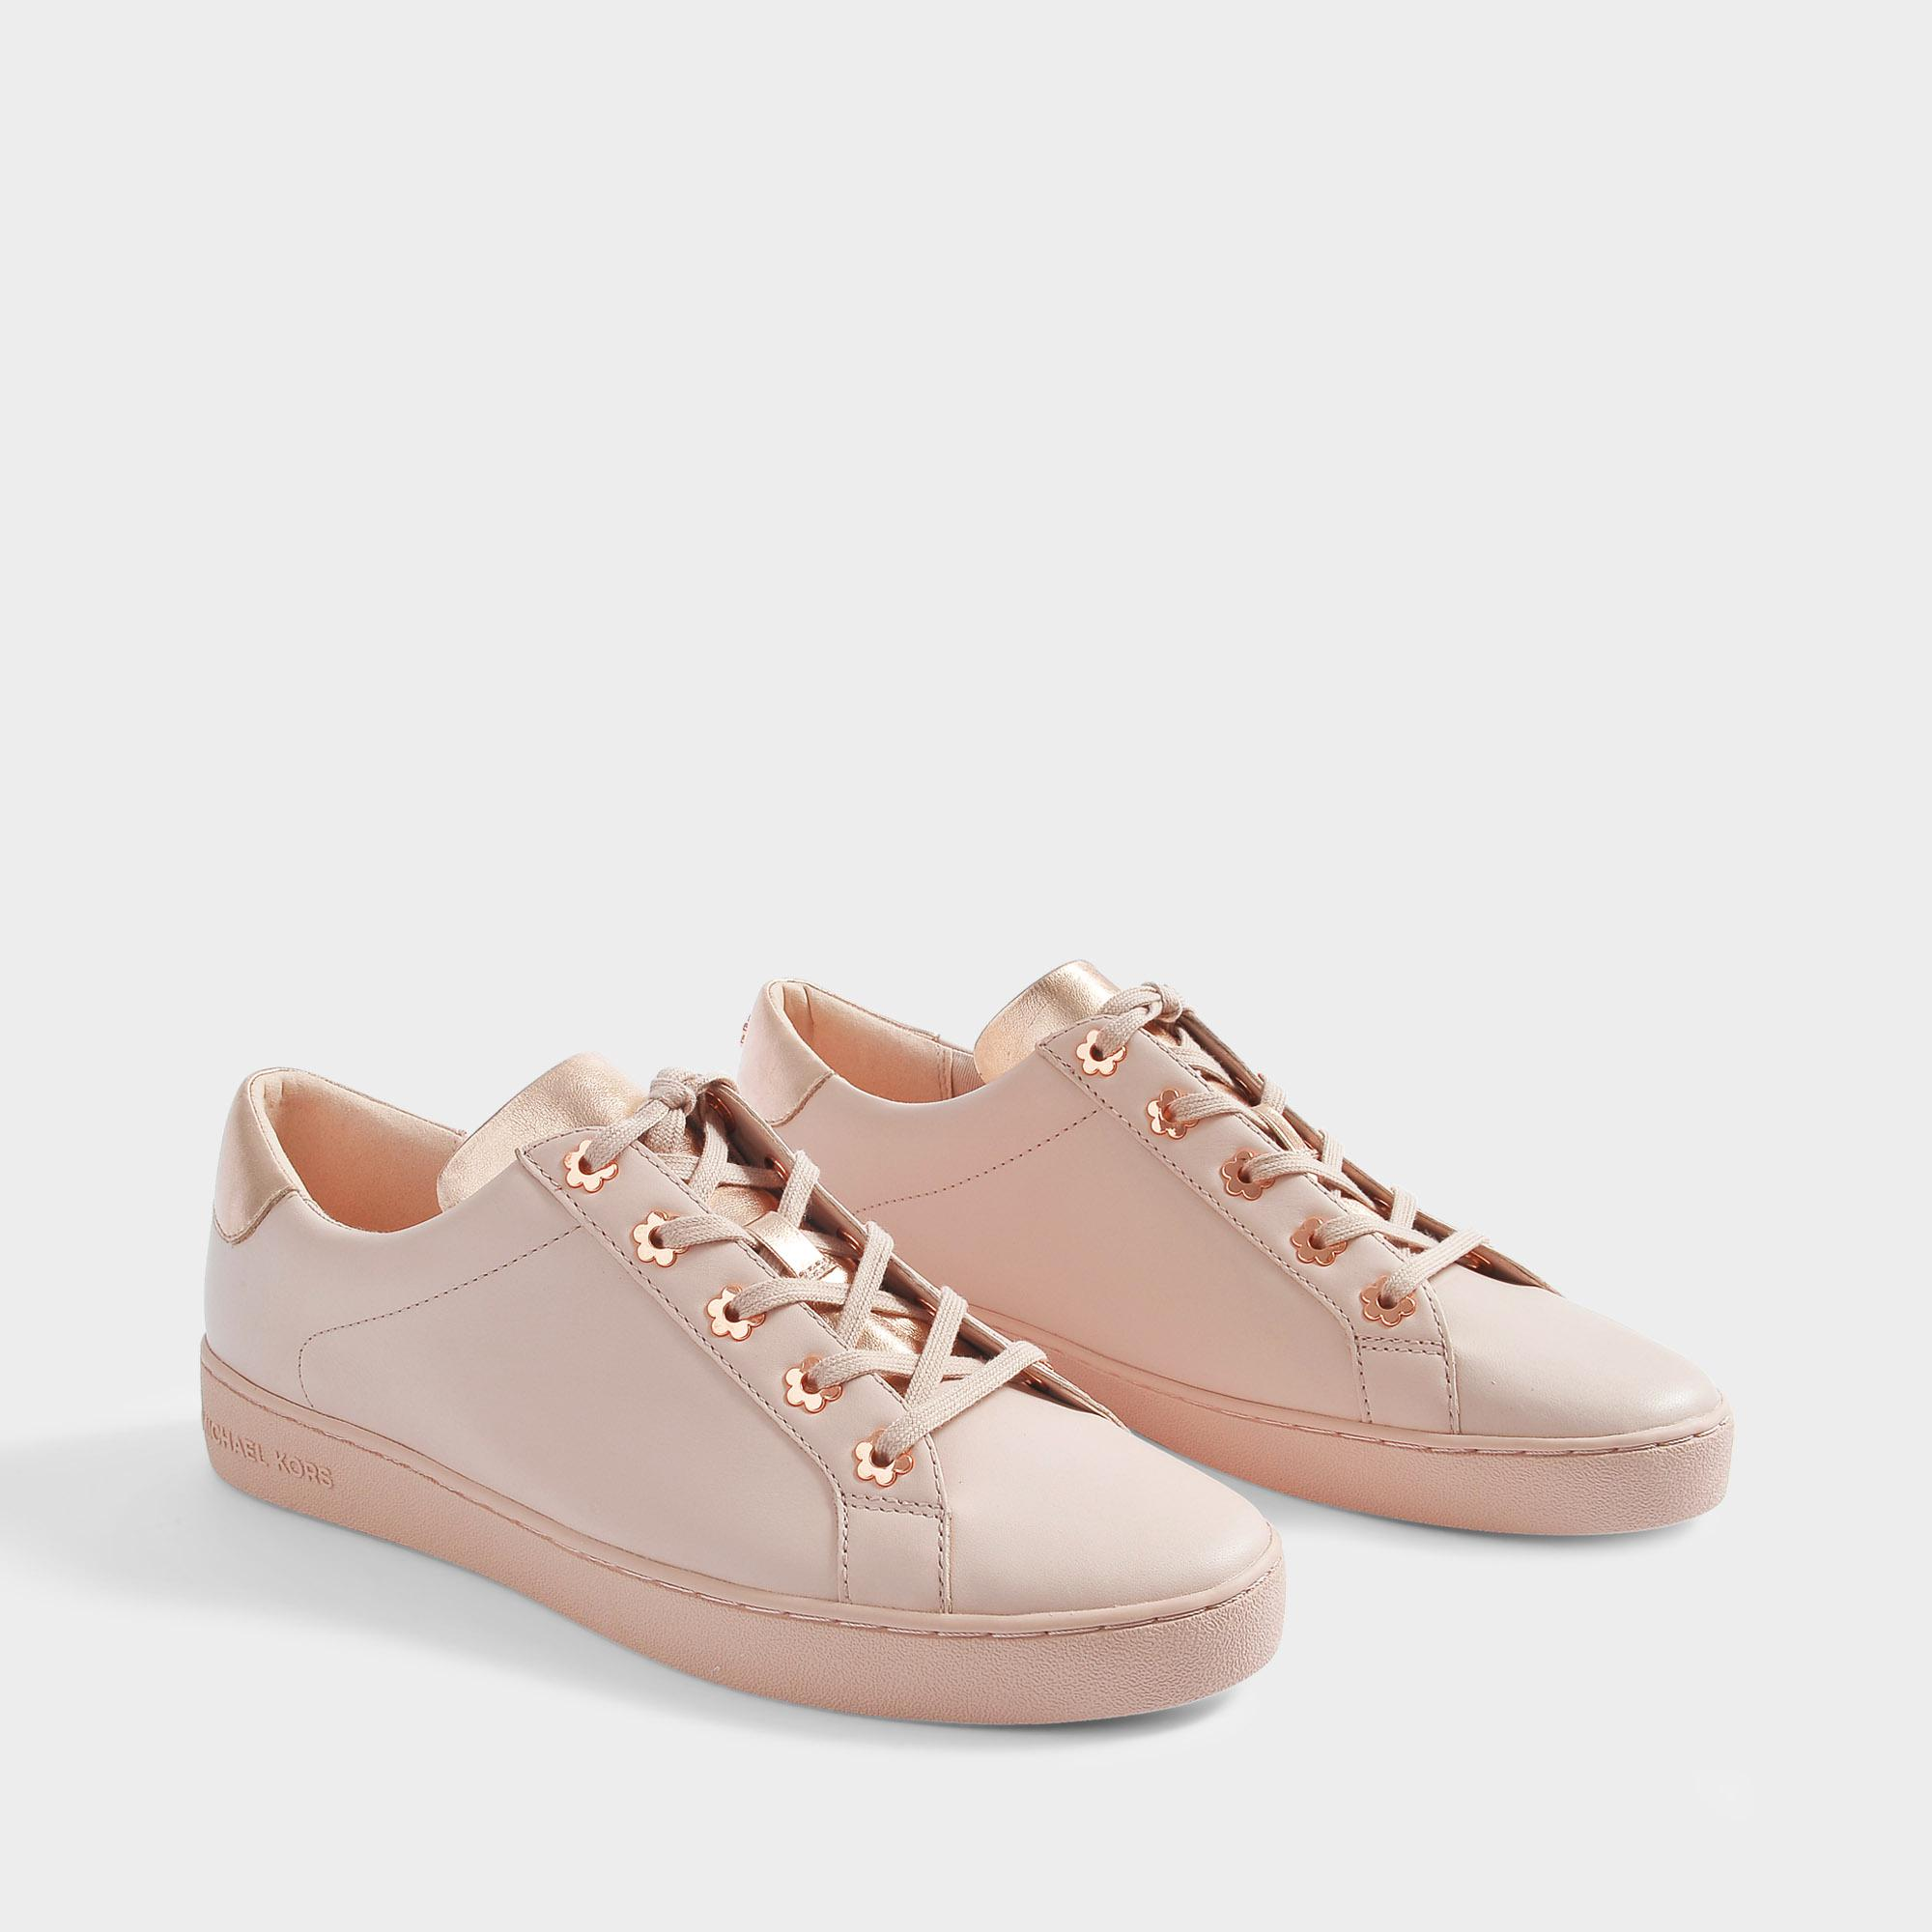 4bbbcf8d961 MICHAEL Michael Kors Irving Sneakers With Flower Detail In Soft Pink ...